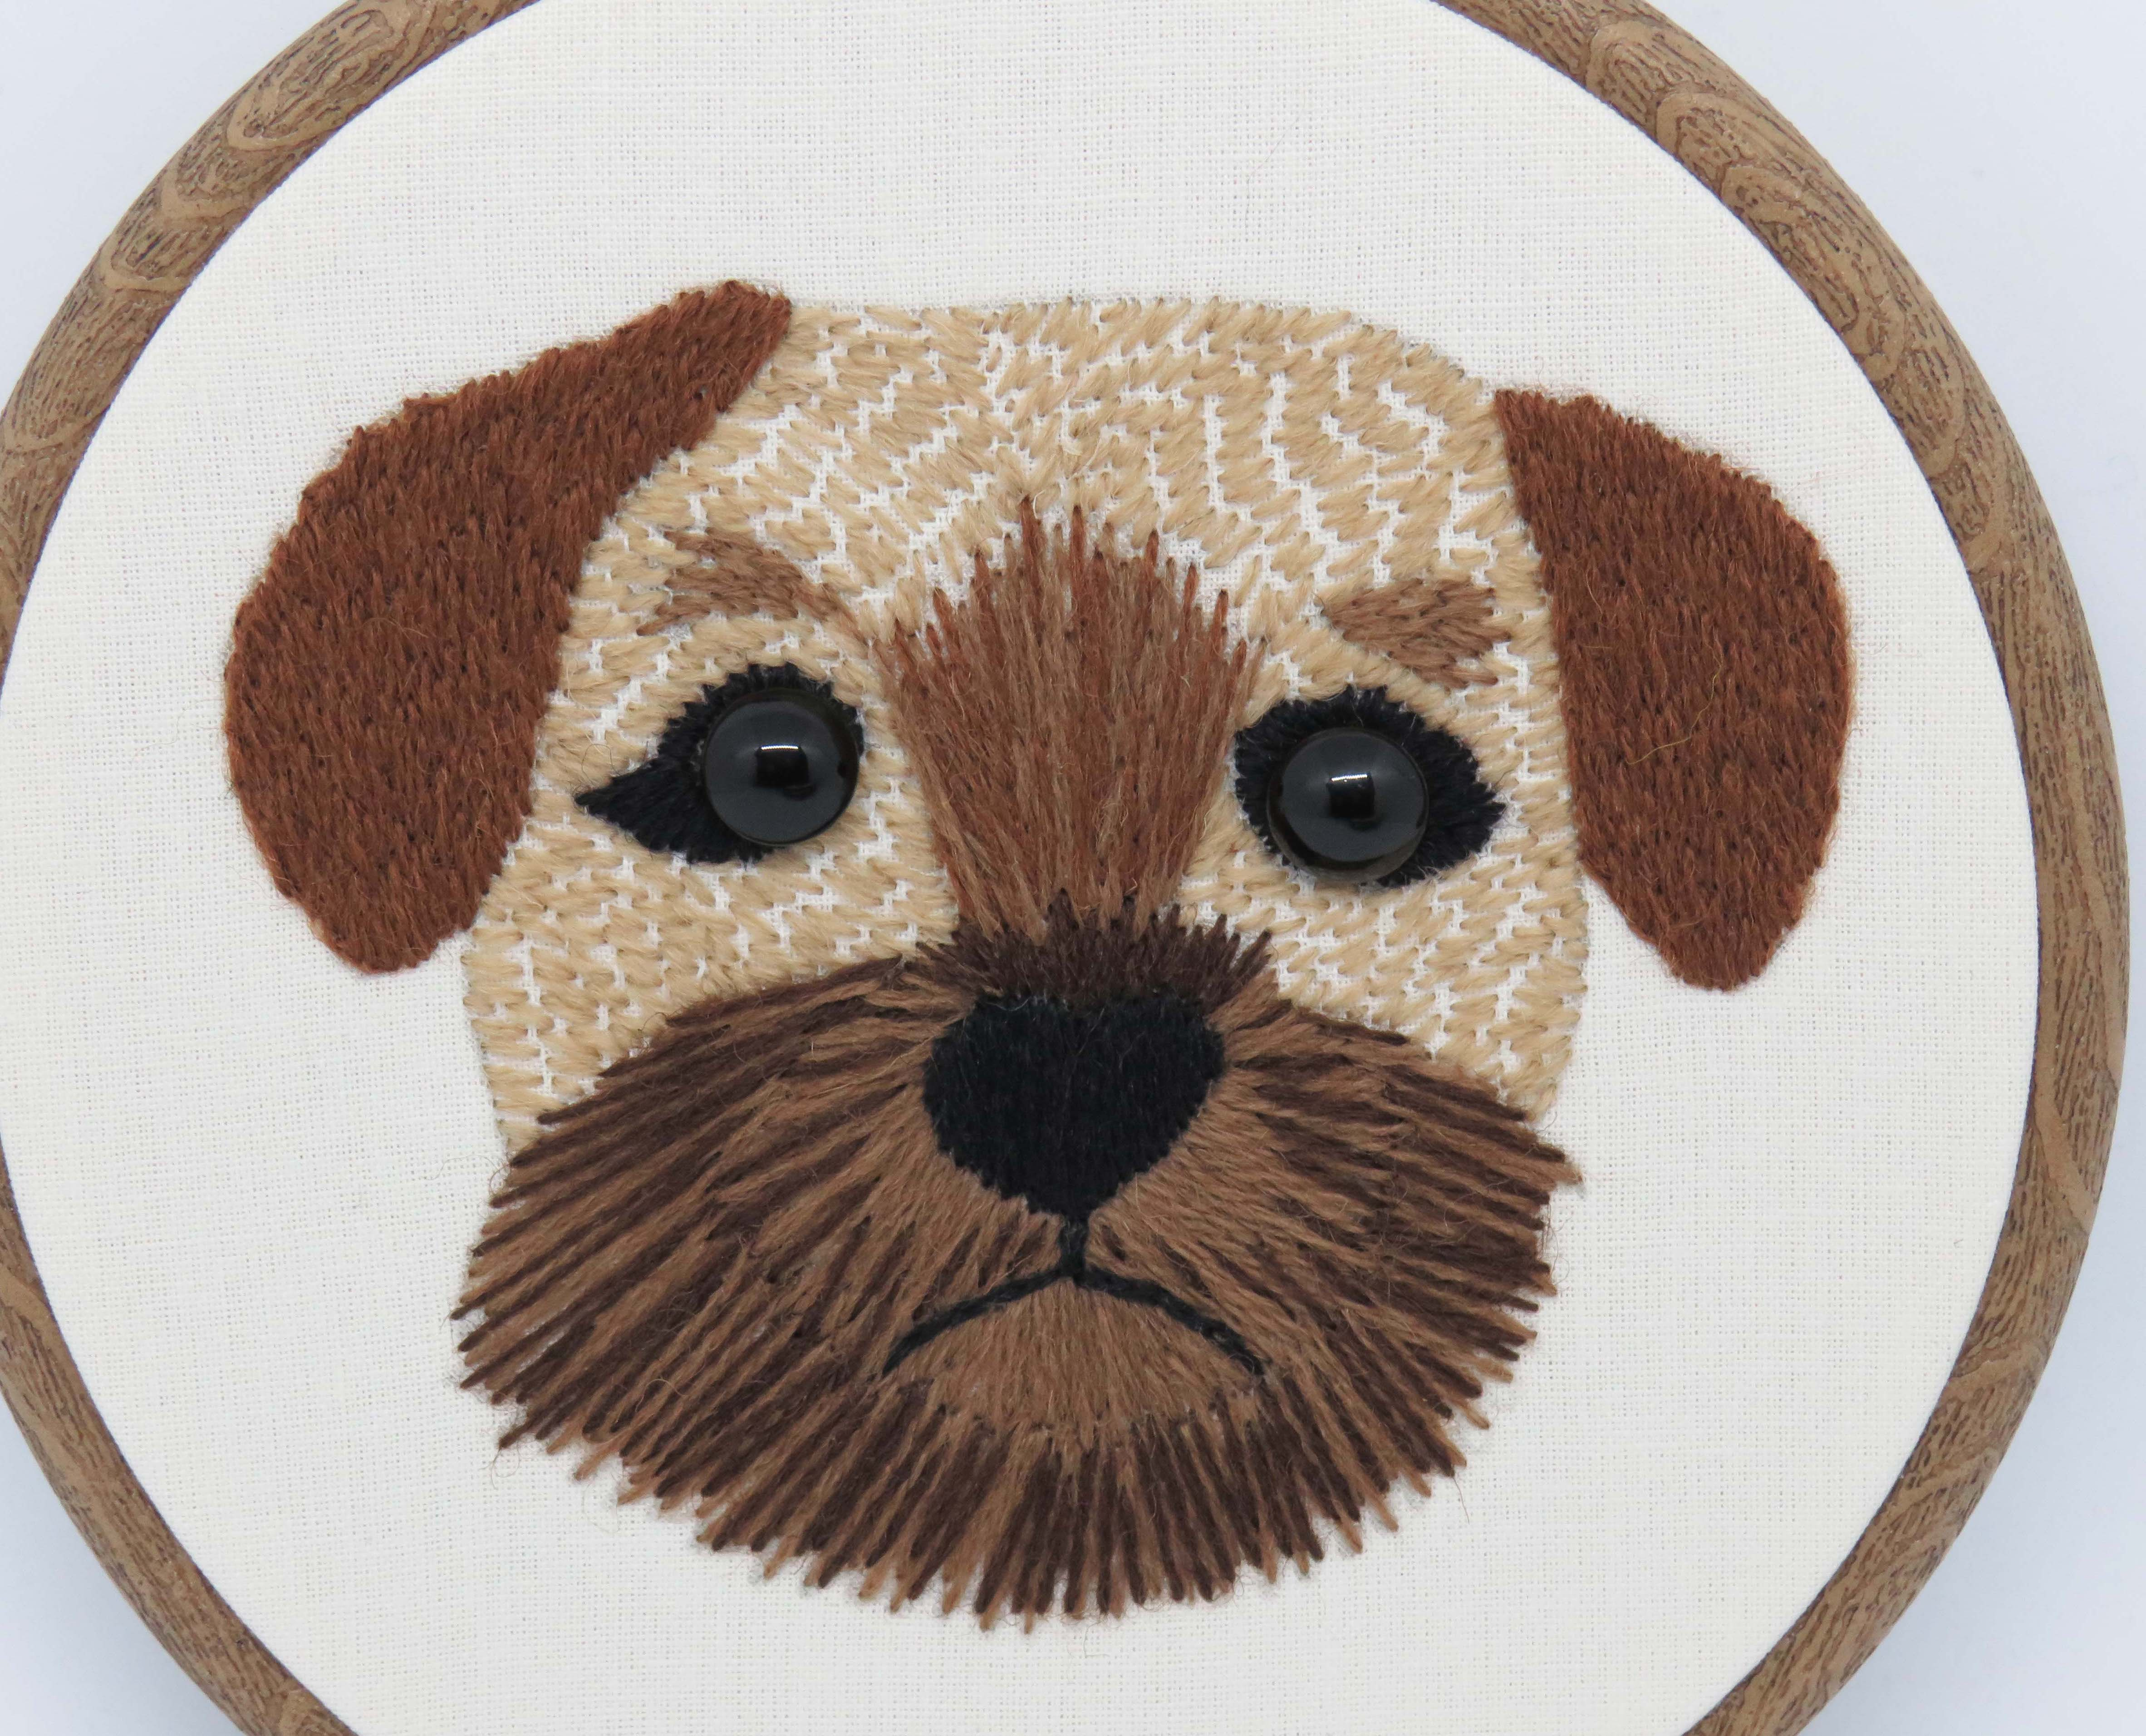 Border Terrier embroidery pattern